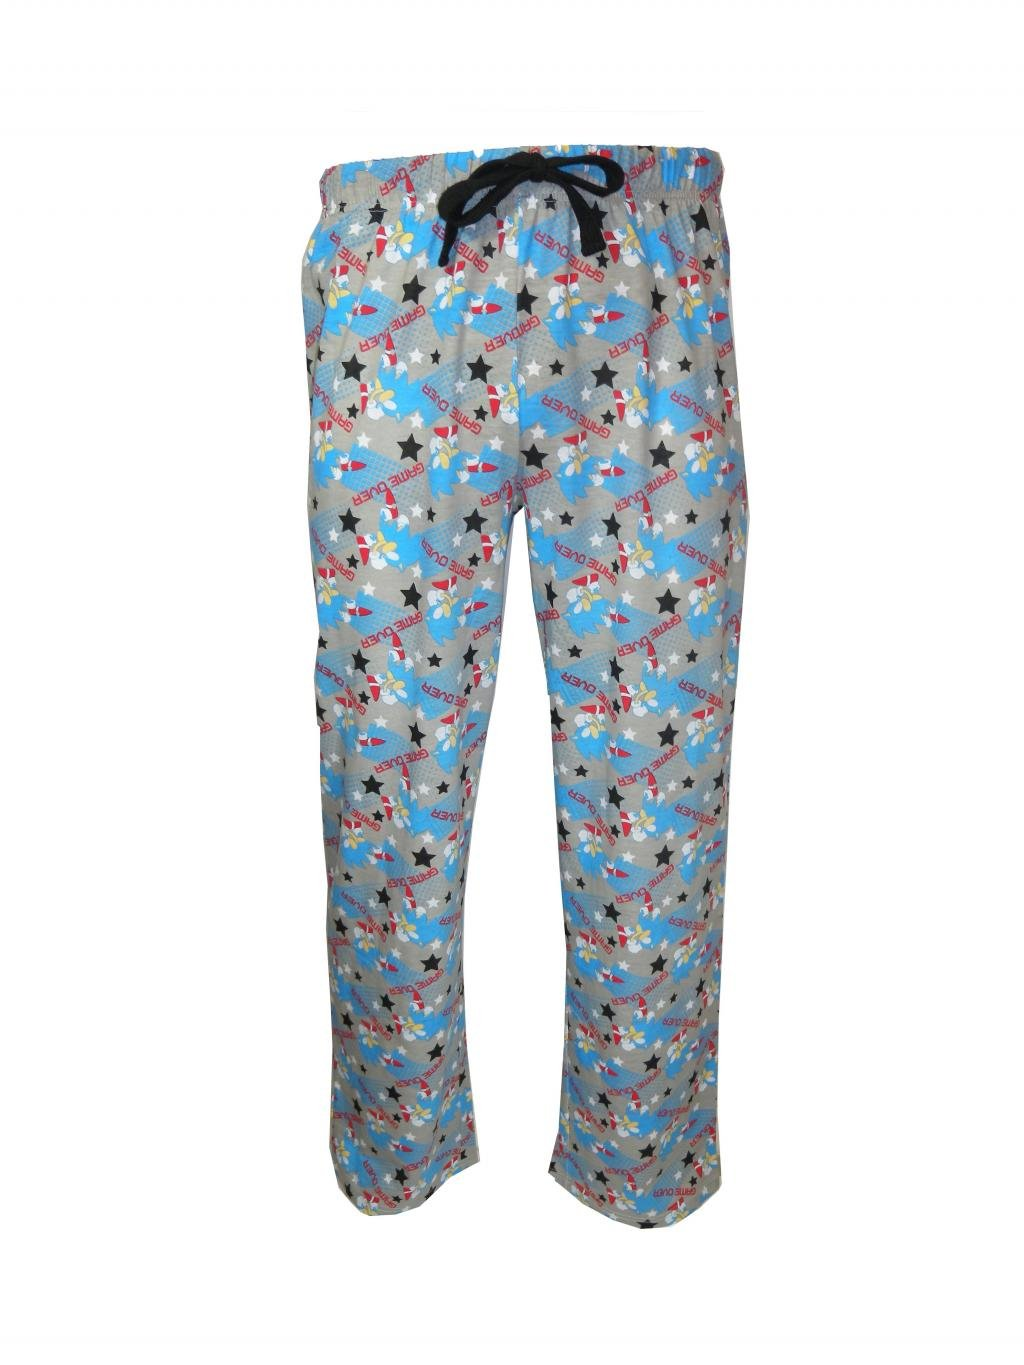 SONIC - Pantalon Pyjama - Game Over (XL)